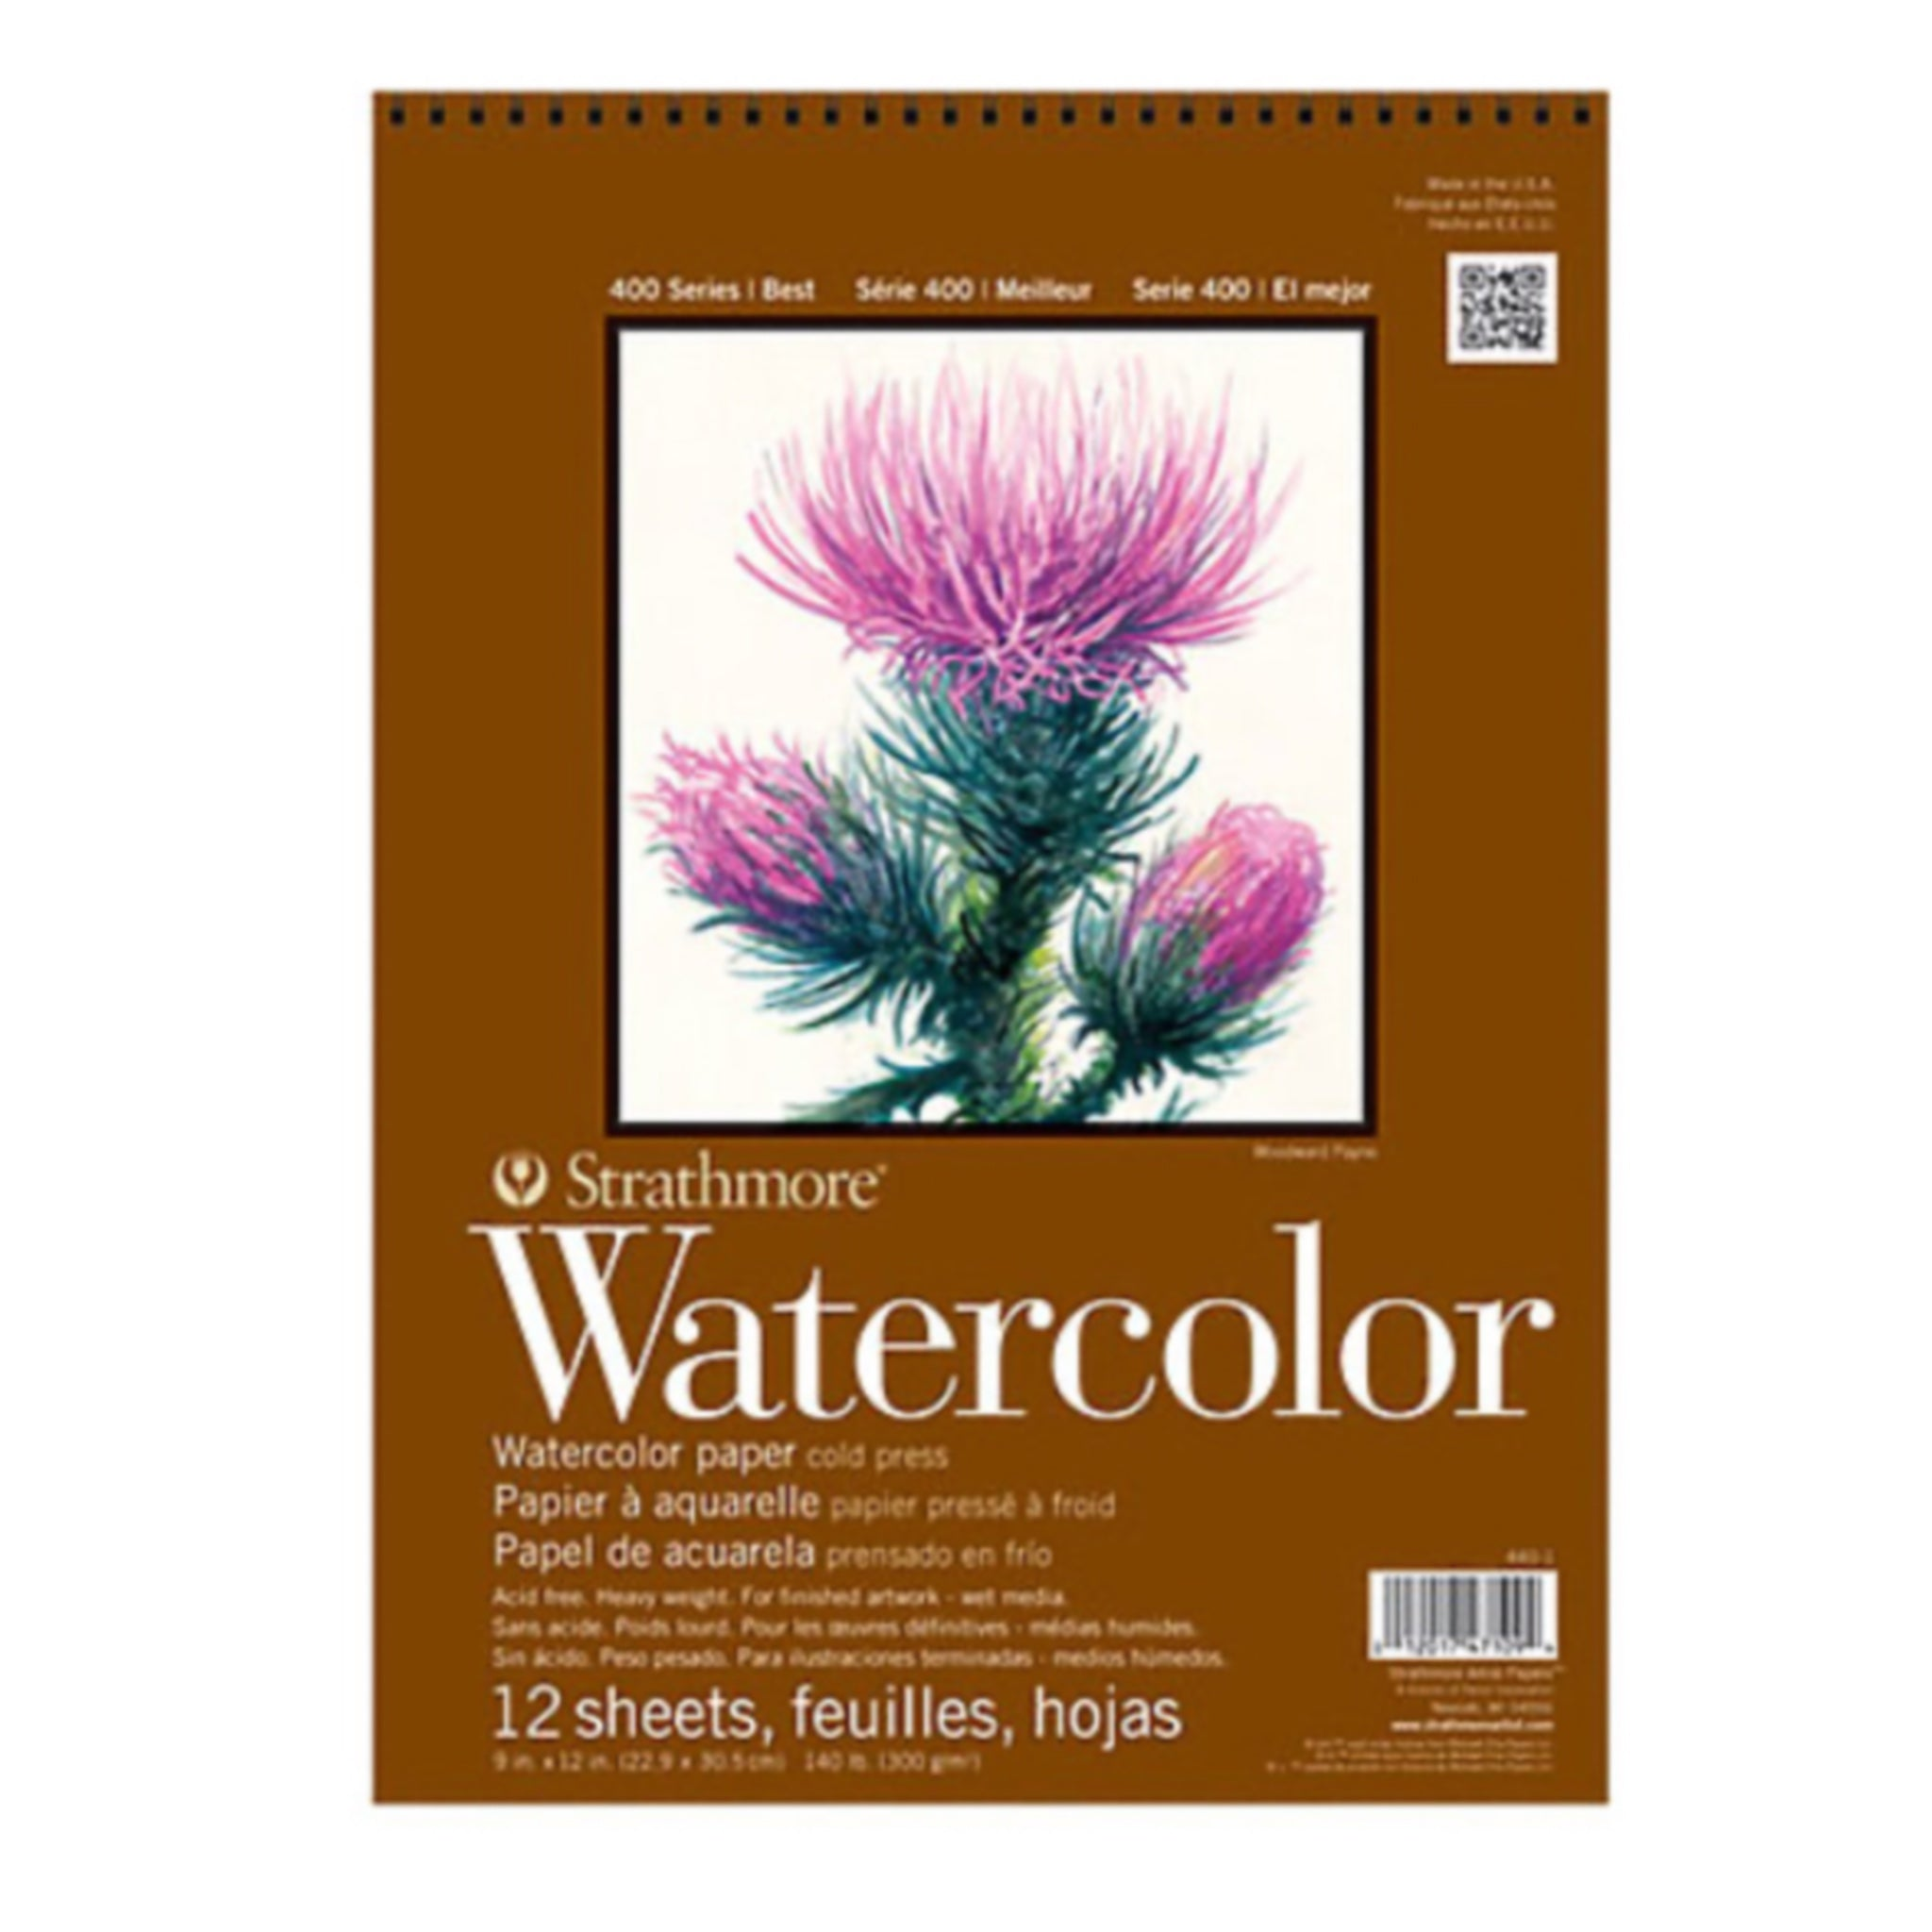 Strathmore 400 Series Watercolor Pad - 11 x 15 inches - by Strathmore - K. A. Artist Shop